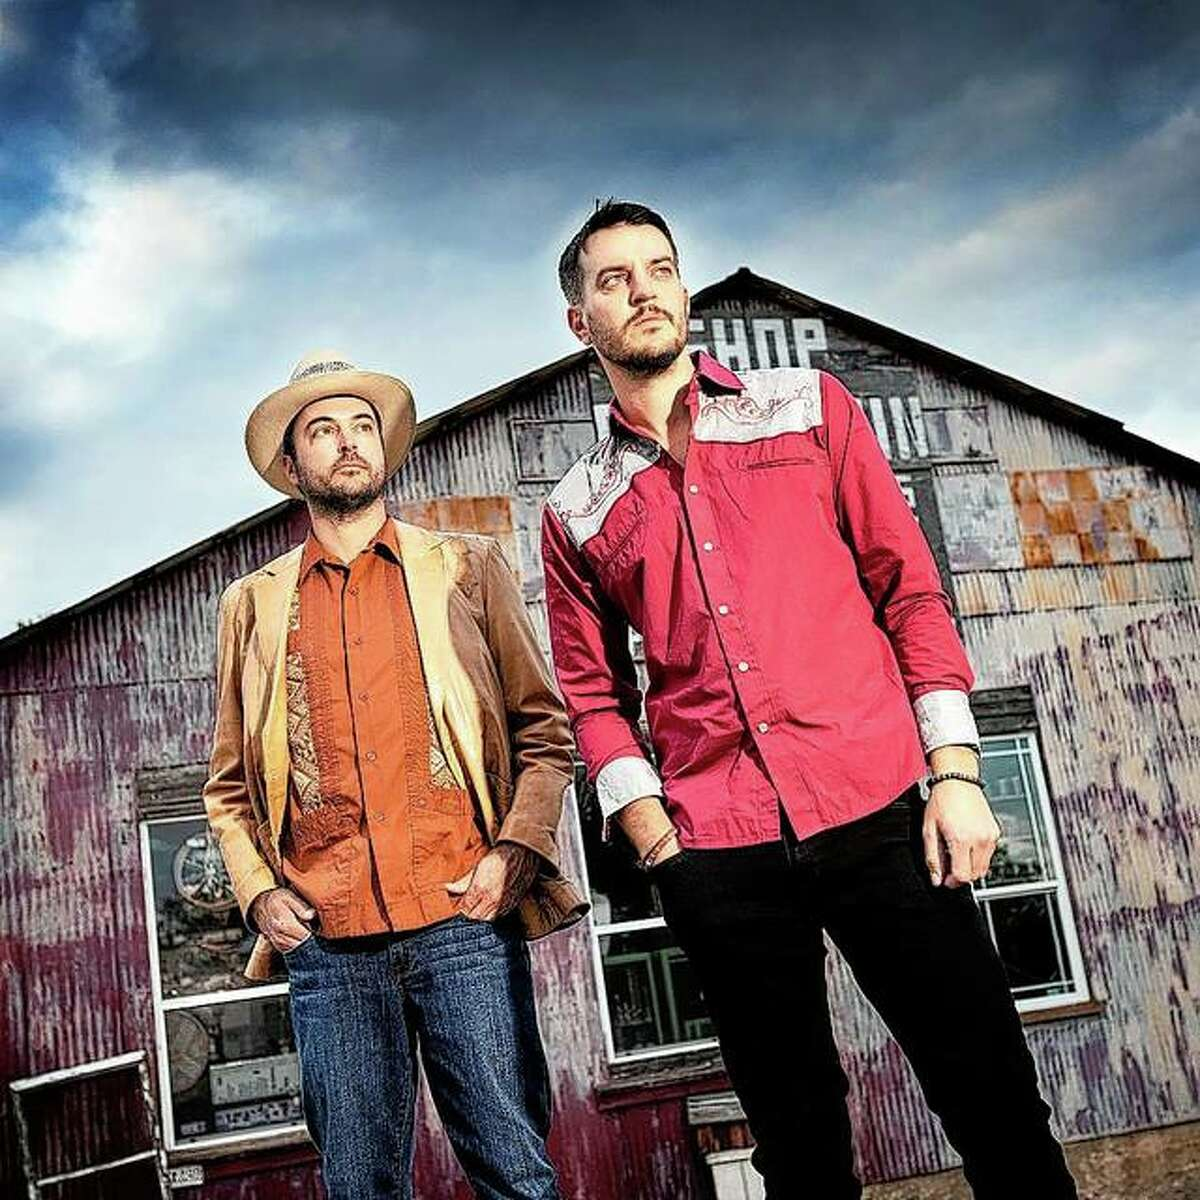 Texas-based band The Statesboro Revue - featuring singer-songwriter-frontman Stewart Mann (left) and his brother, Garrett Mann on lead guitar - will be in concert Friday in downtown Jacksonville as part of the Jacksonville Main Street Downtown Concert Series.